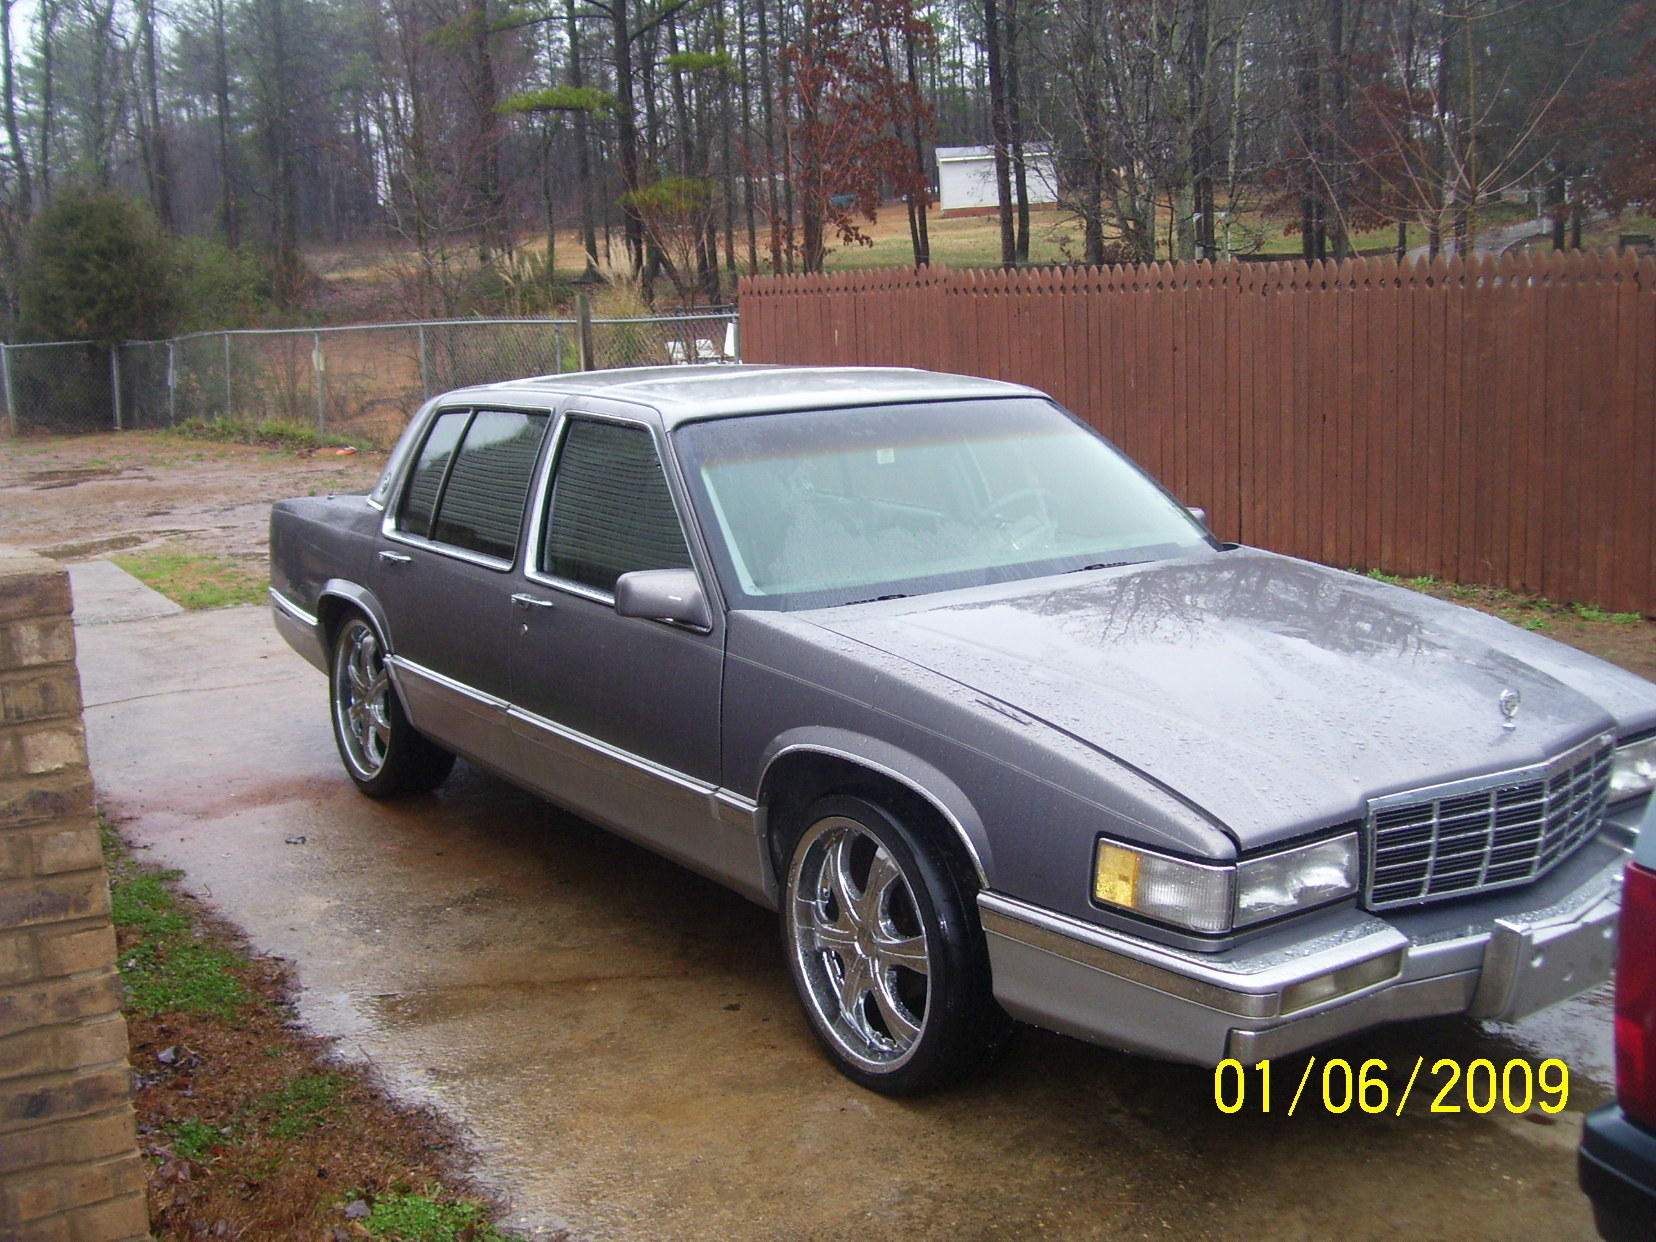 wendells93 39 s 1992 cadillac deville in greenville sc. Cars Review. Best American Auto & Cars Review